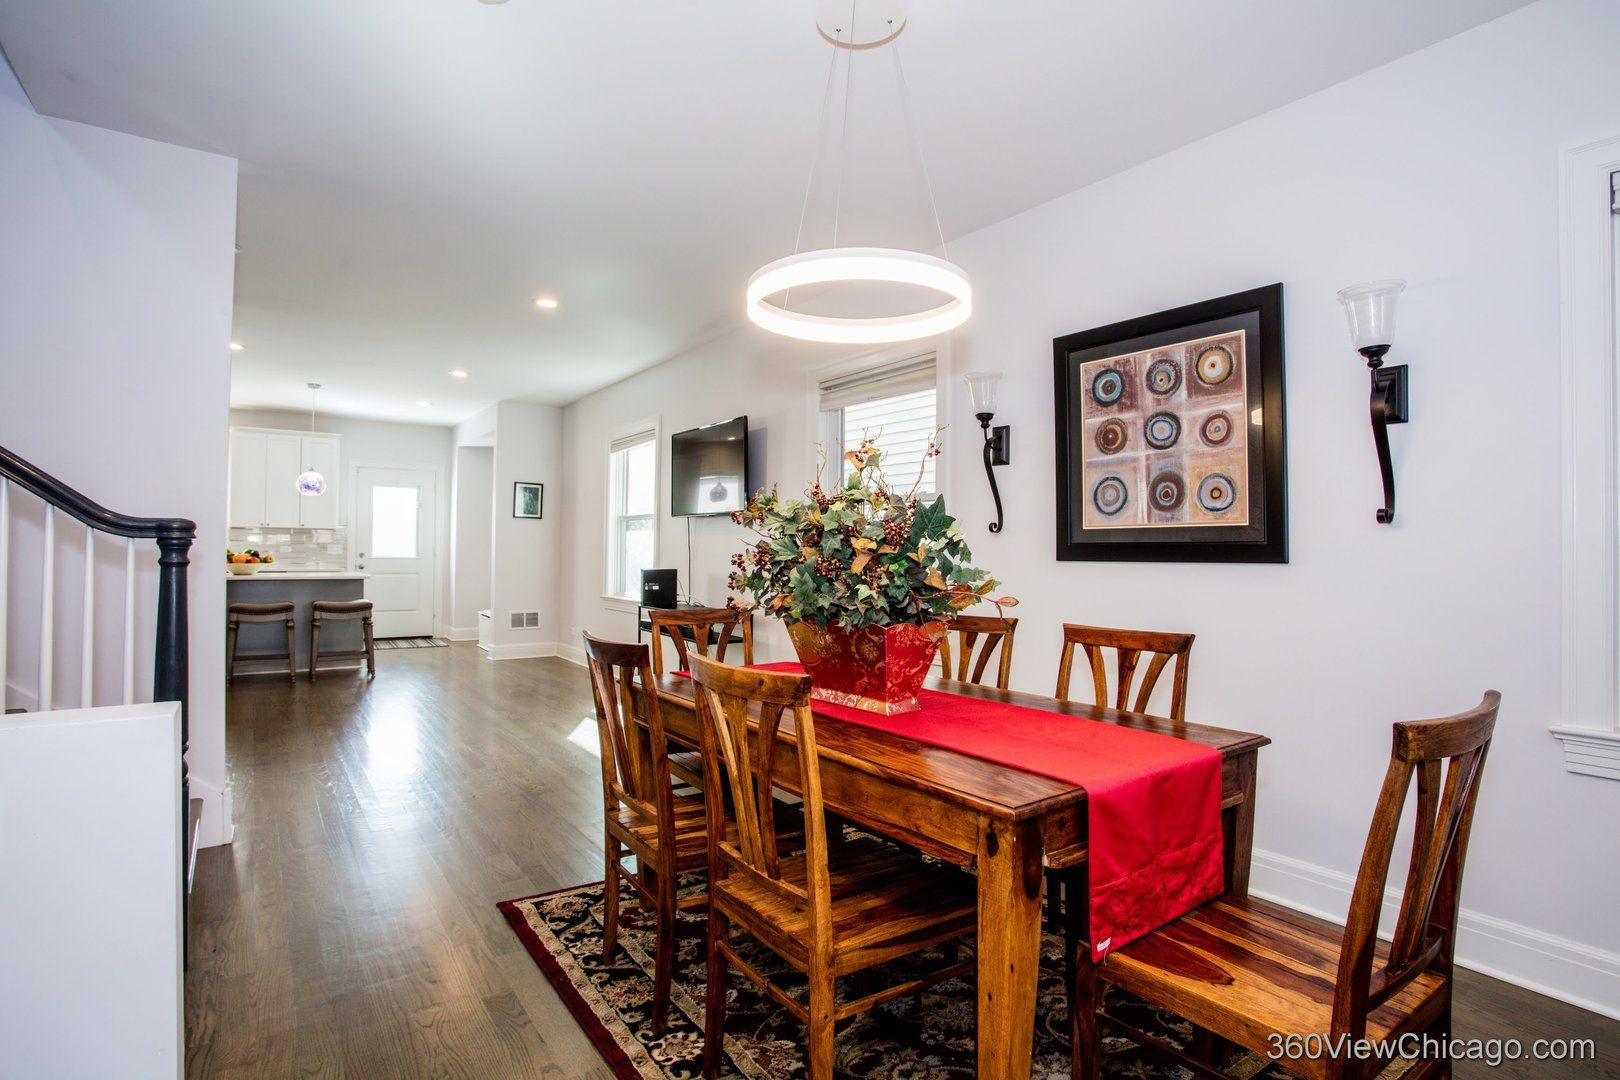 Photo 8: Photos: 1733 Troy Street in Chicago: CHI - Humboldt Park Residential for sale ()  : MLS®# 10911567